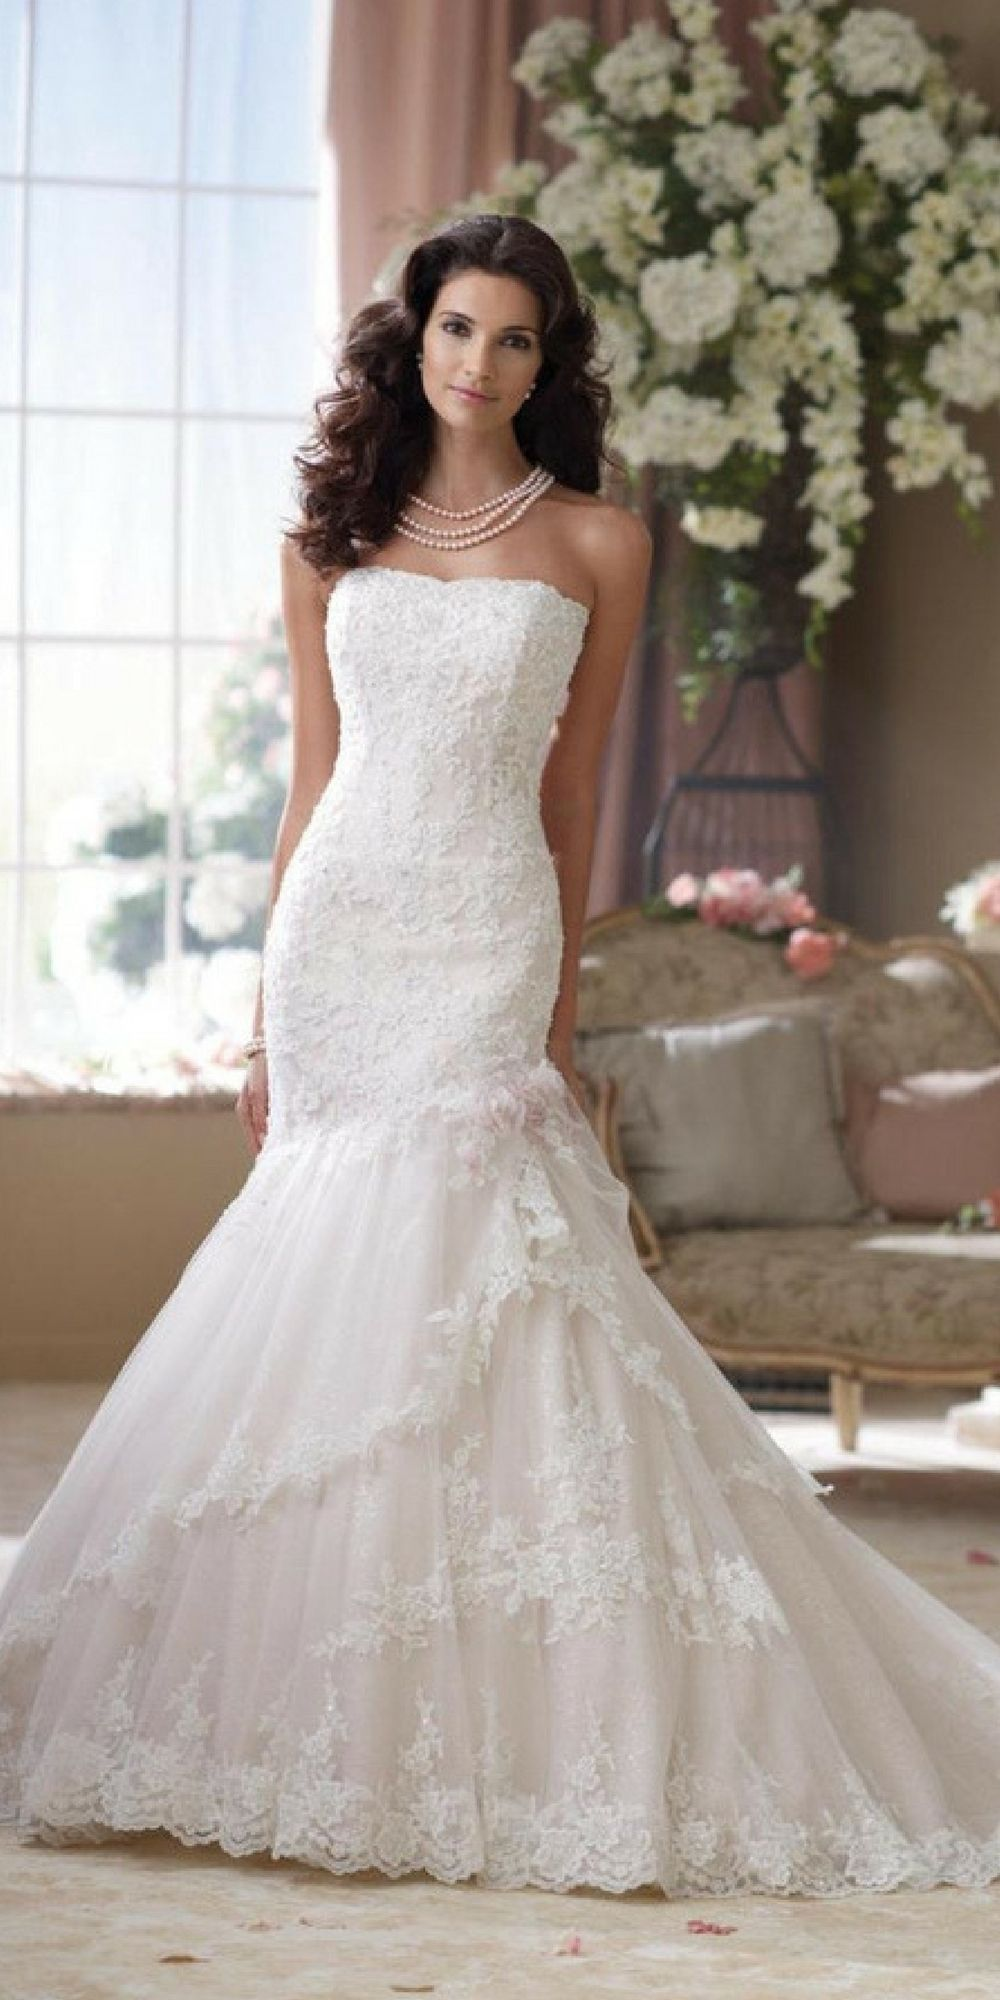 Embroidered lace wedding dress  Strapless handbeaded reembroidered lace trumpet gown with soft